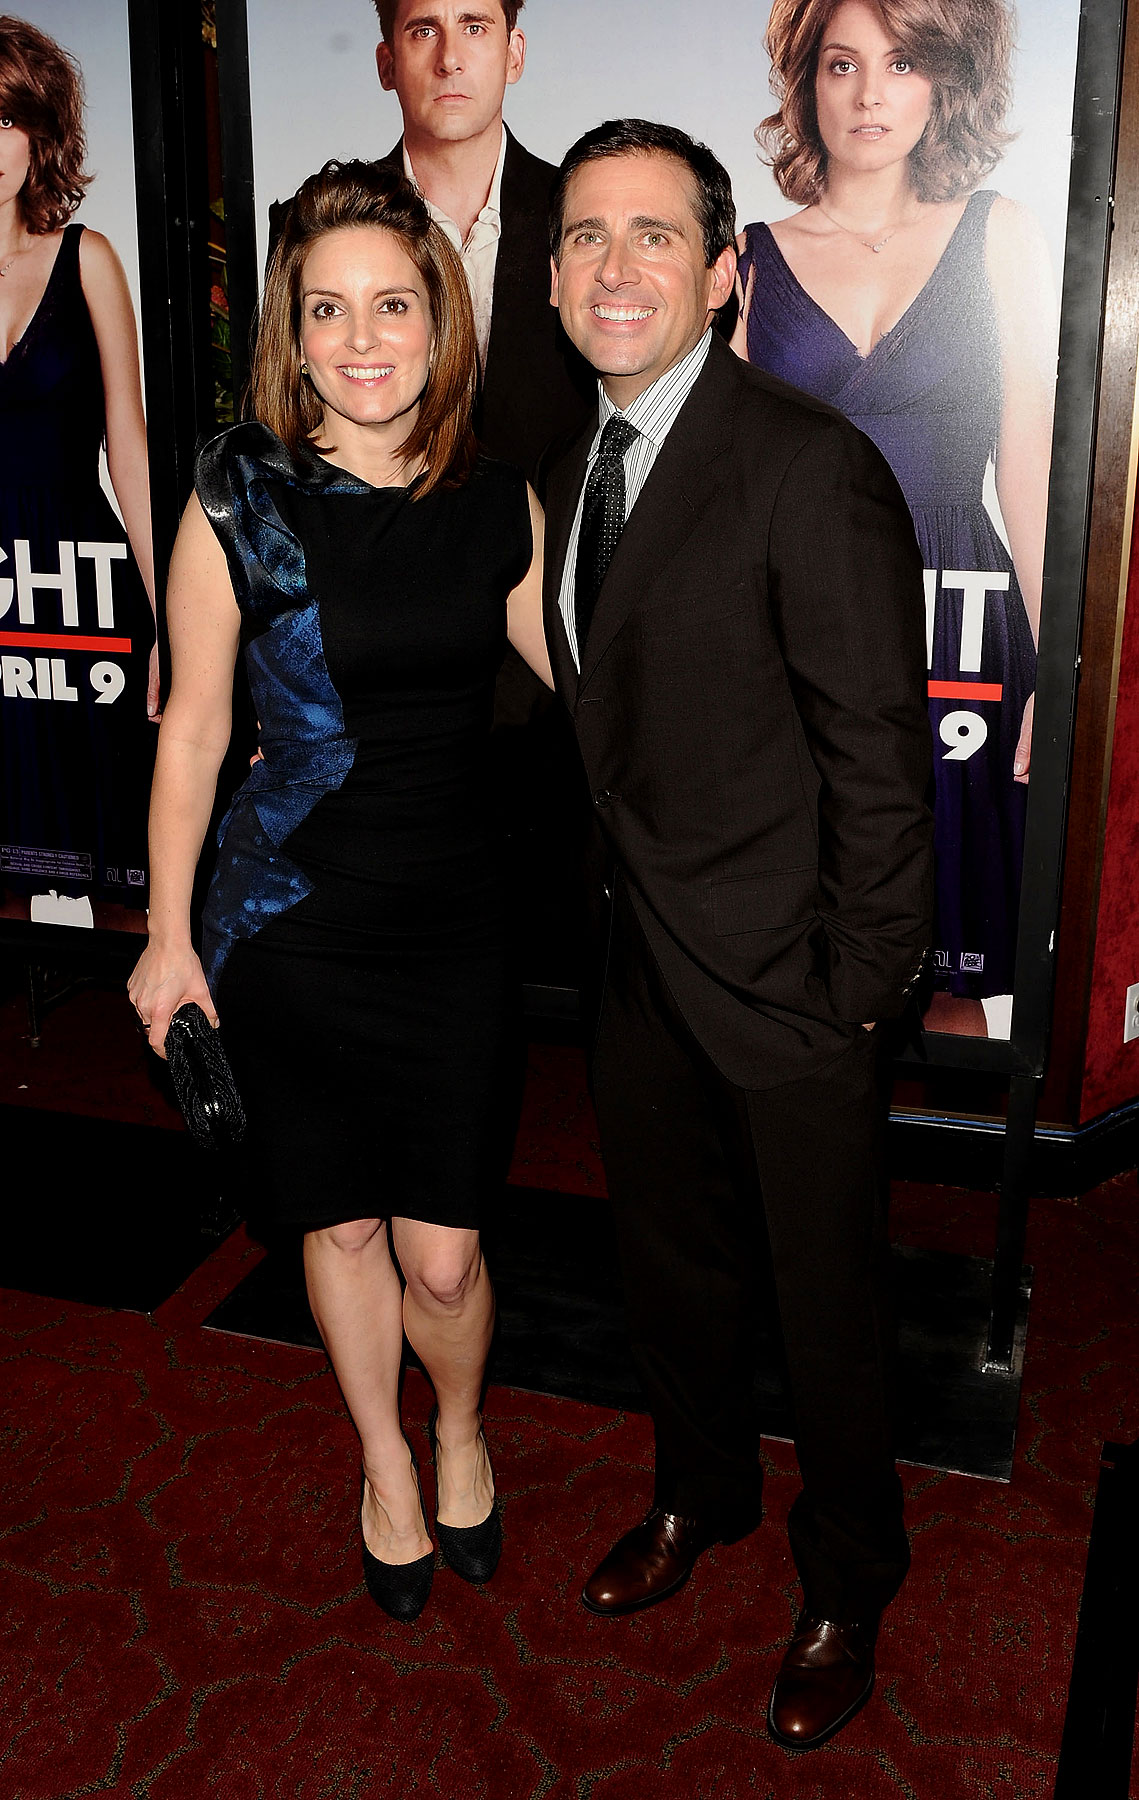 Tina Fey And Steve Carell Step Out For 'Date Night' Premiere (PHOTOS)